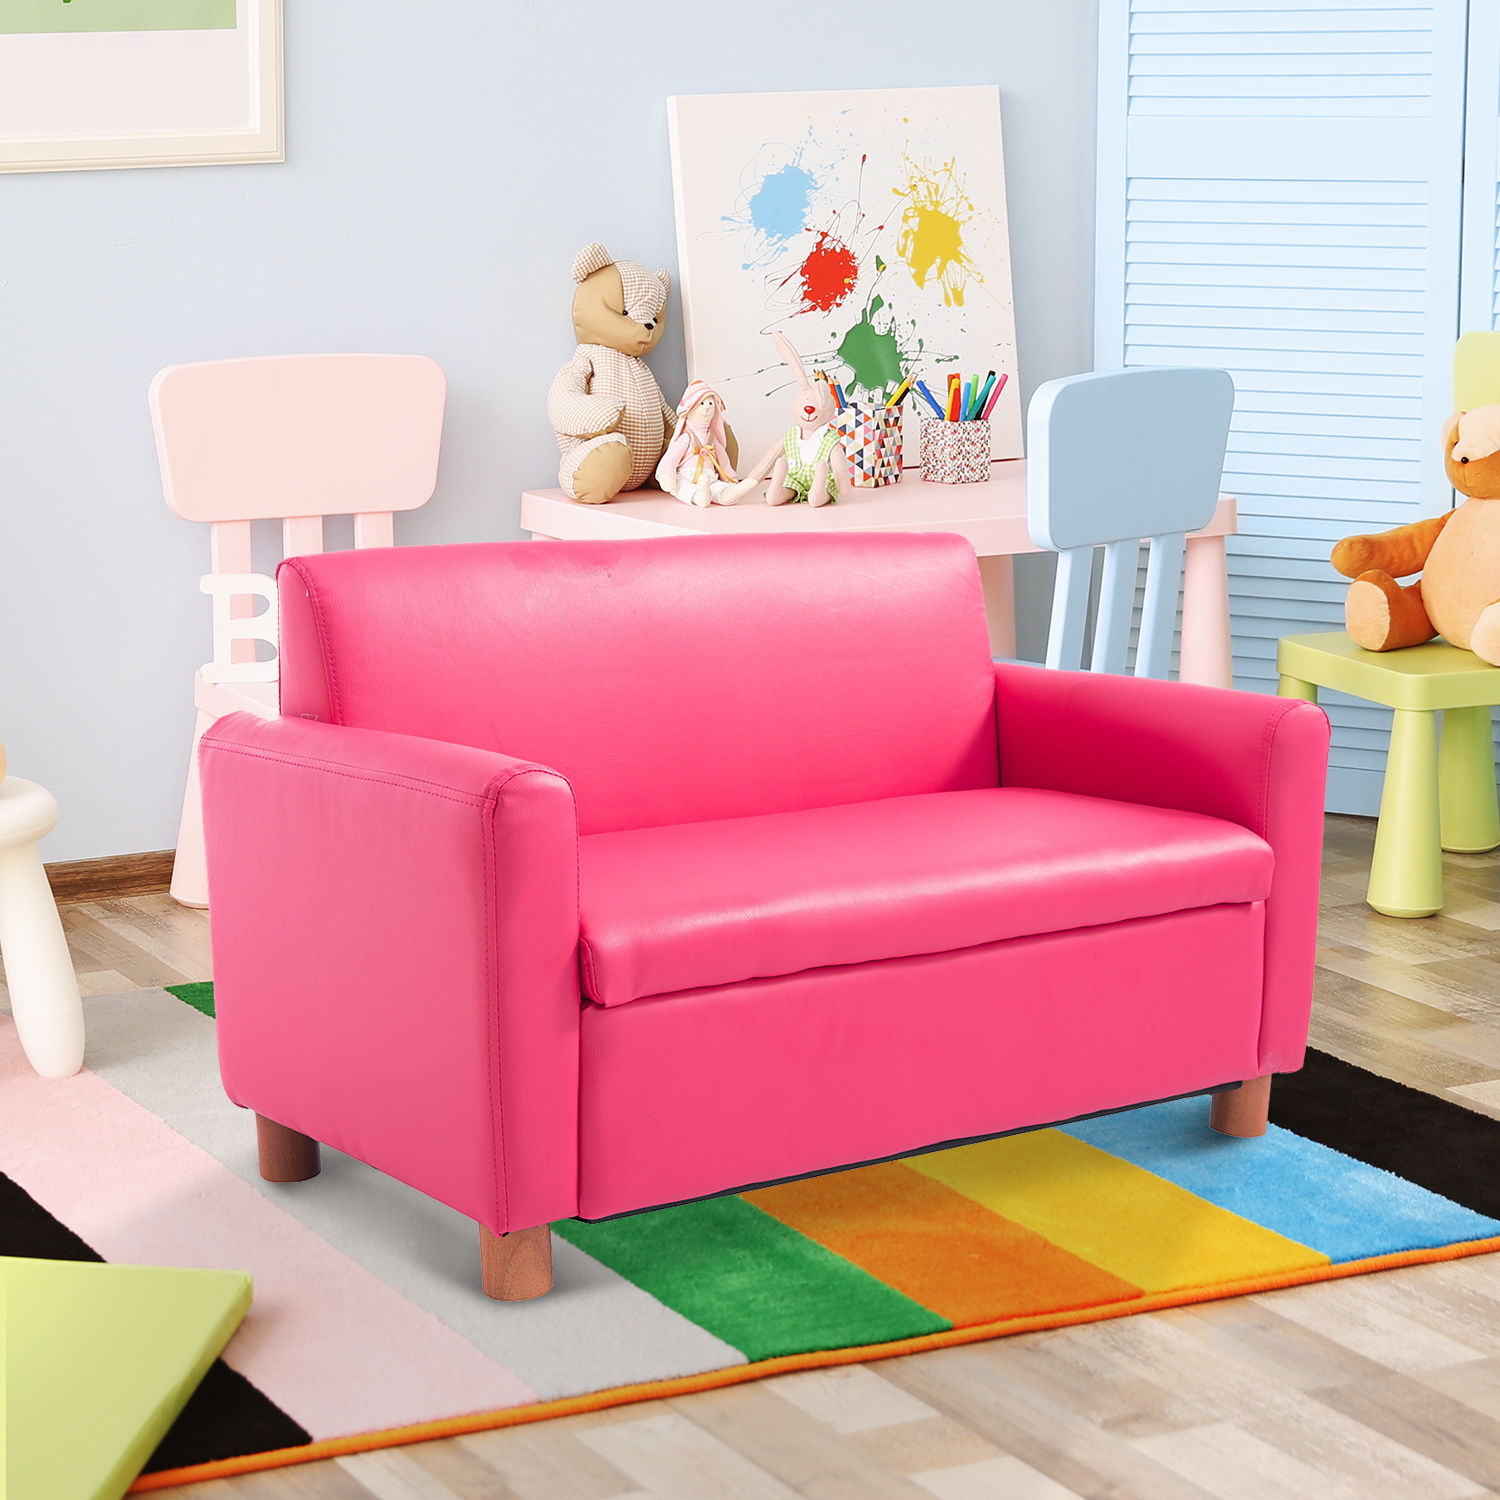 Toddler Couch Pink Double Kid Toddler Sofa Armchair Recliner Pu Leather